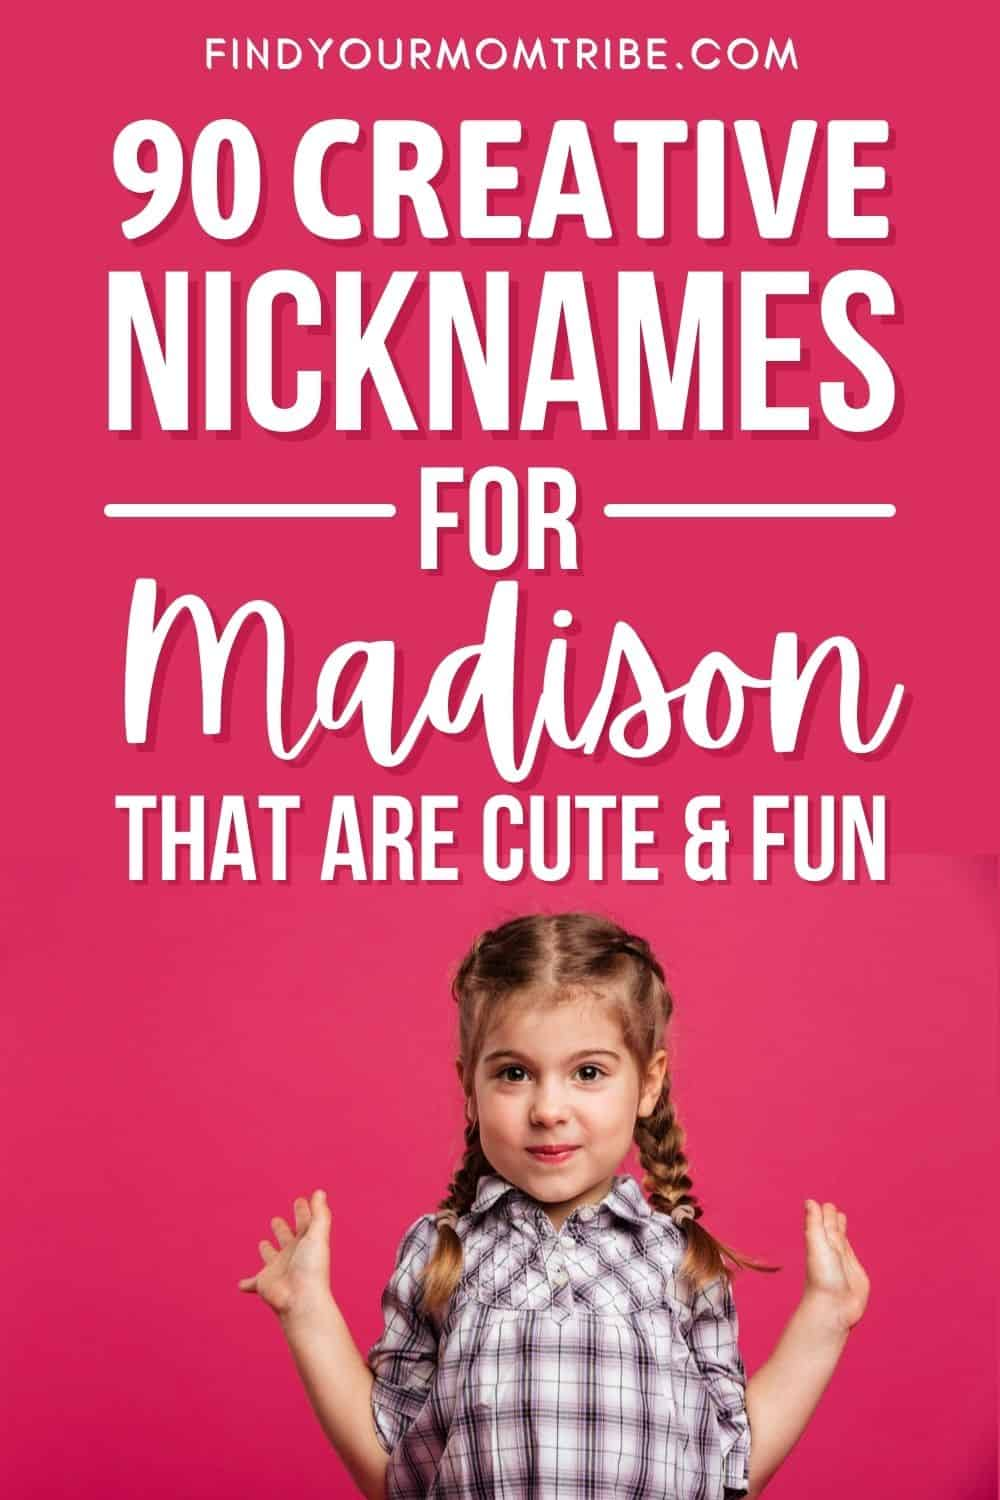 Funny And Creative Nicknames For Madison That Work Wonderfully Pinterest